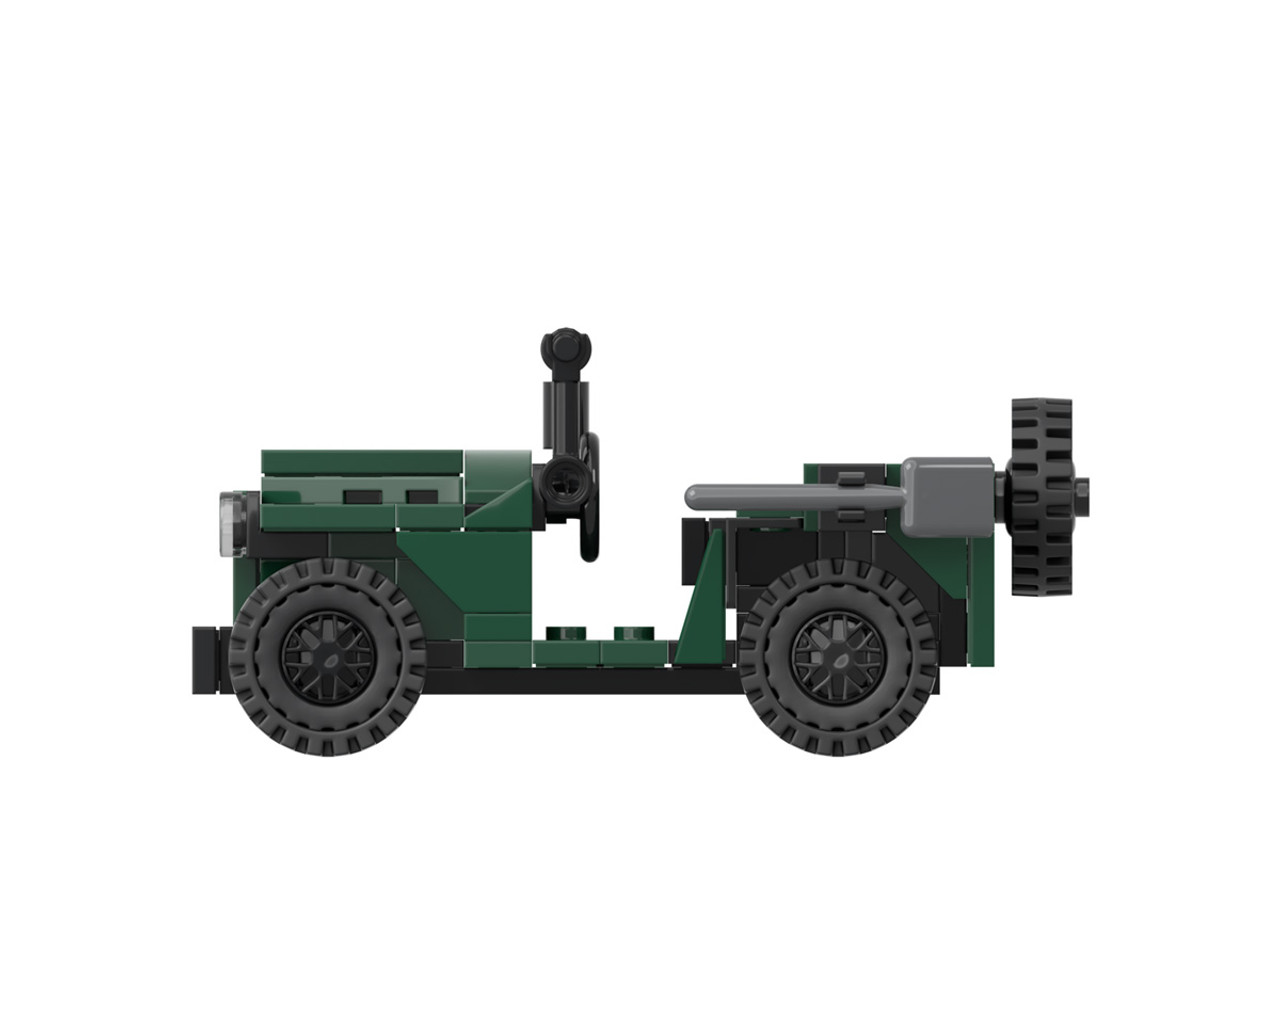 GAZ-67 - General Purpose 4x4